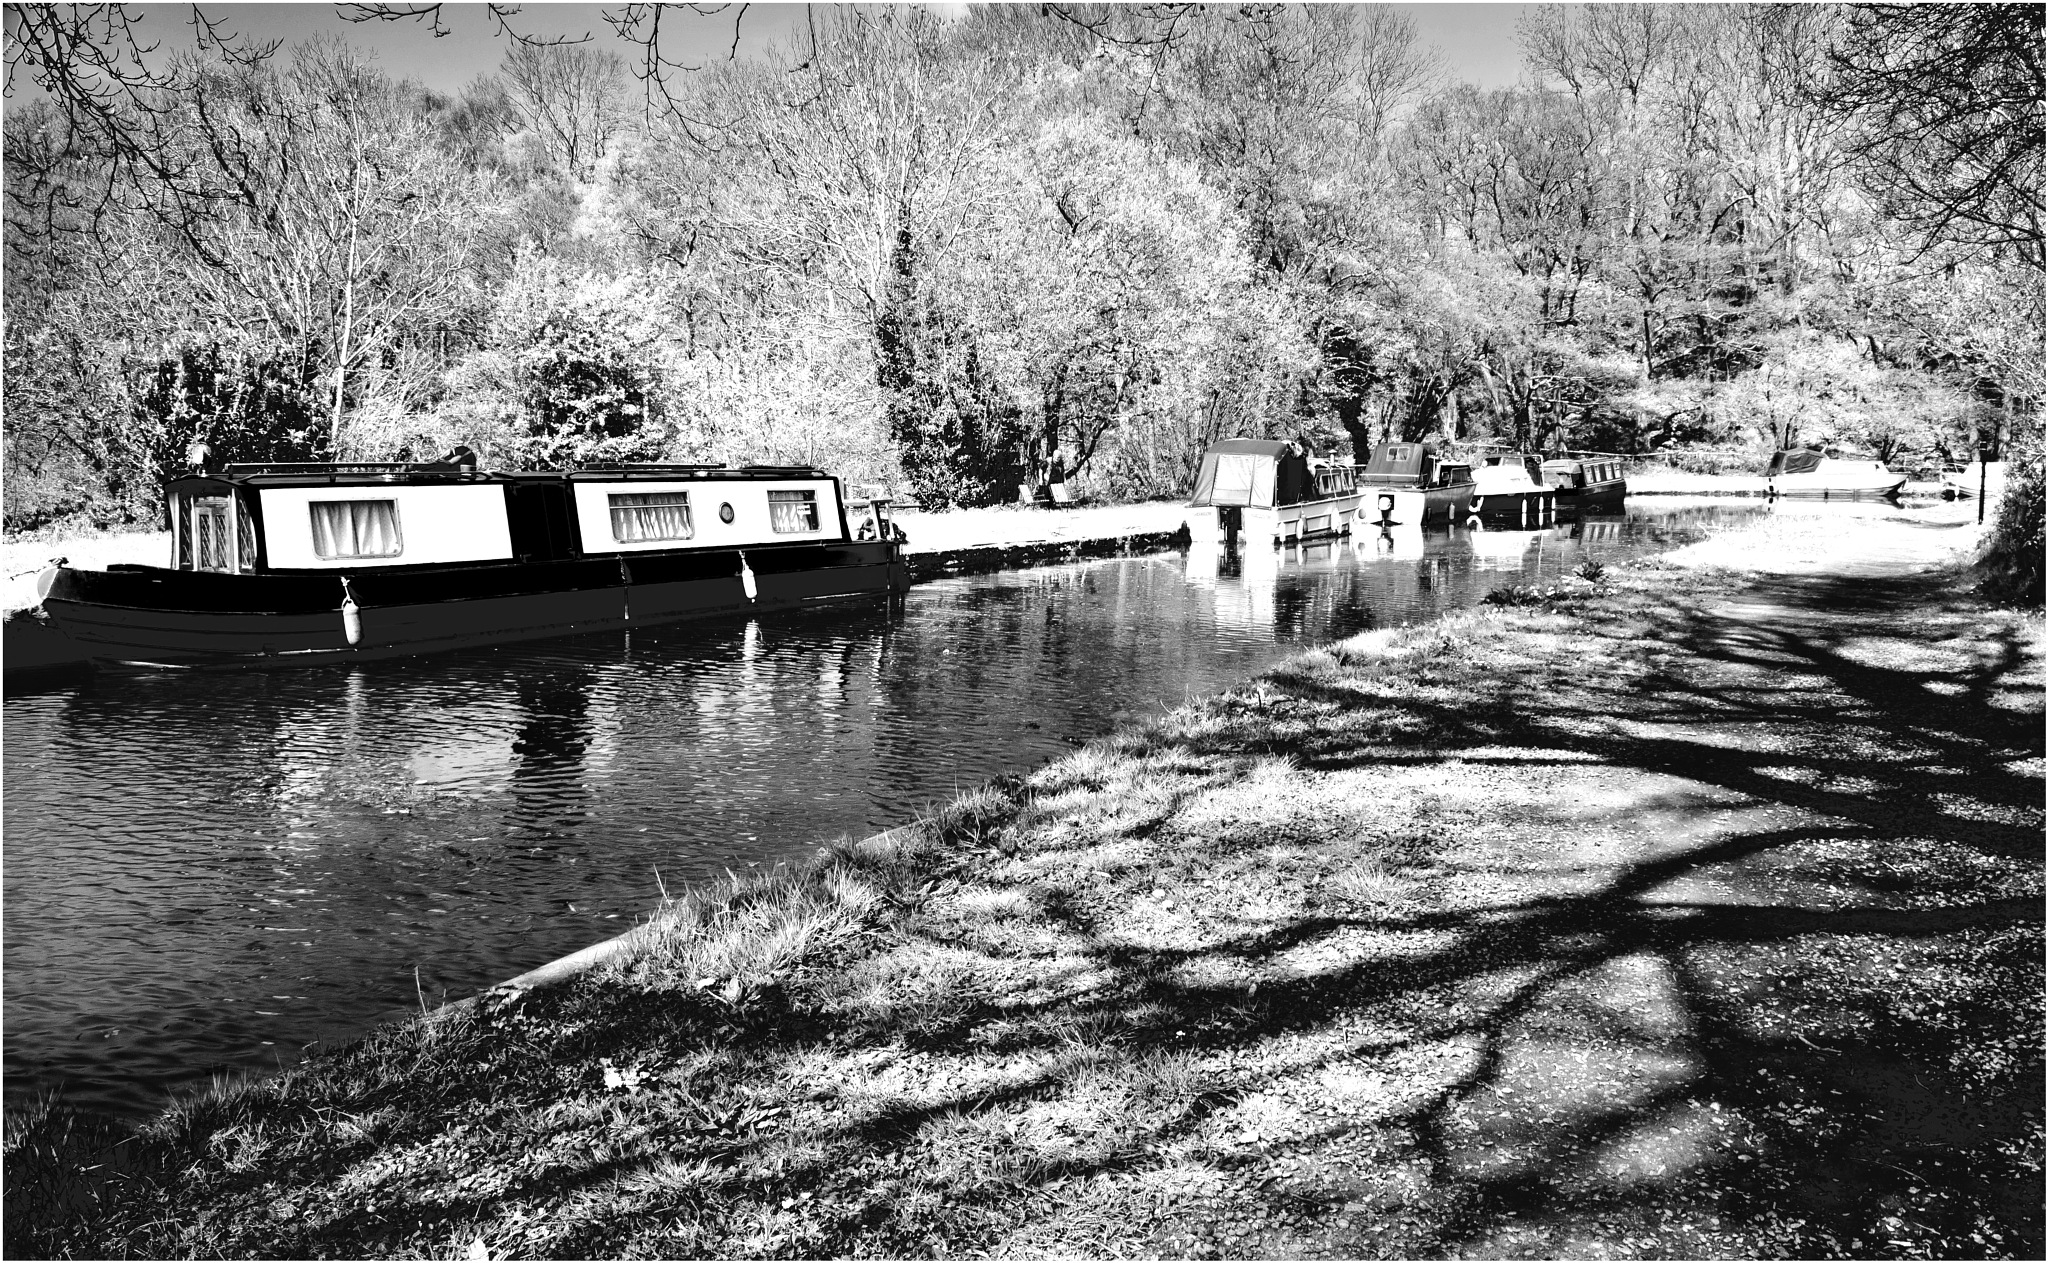 Brecon canal by edwinphillips